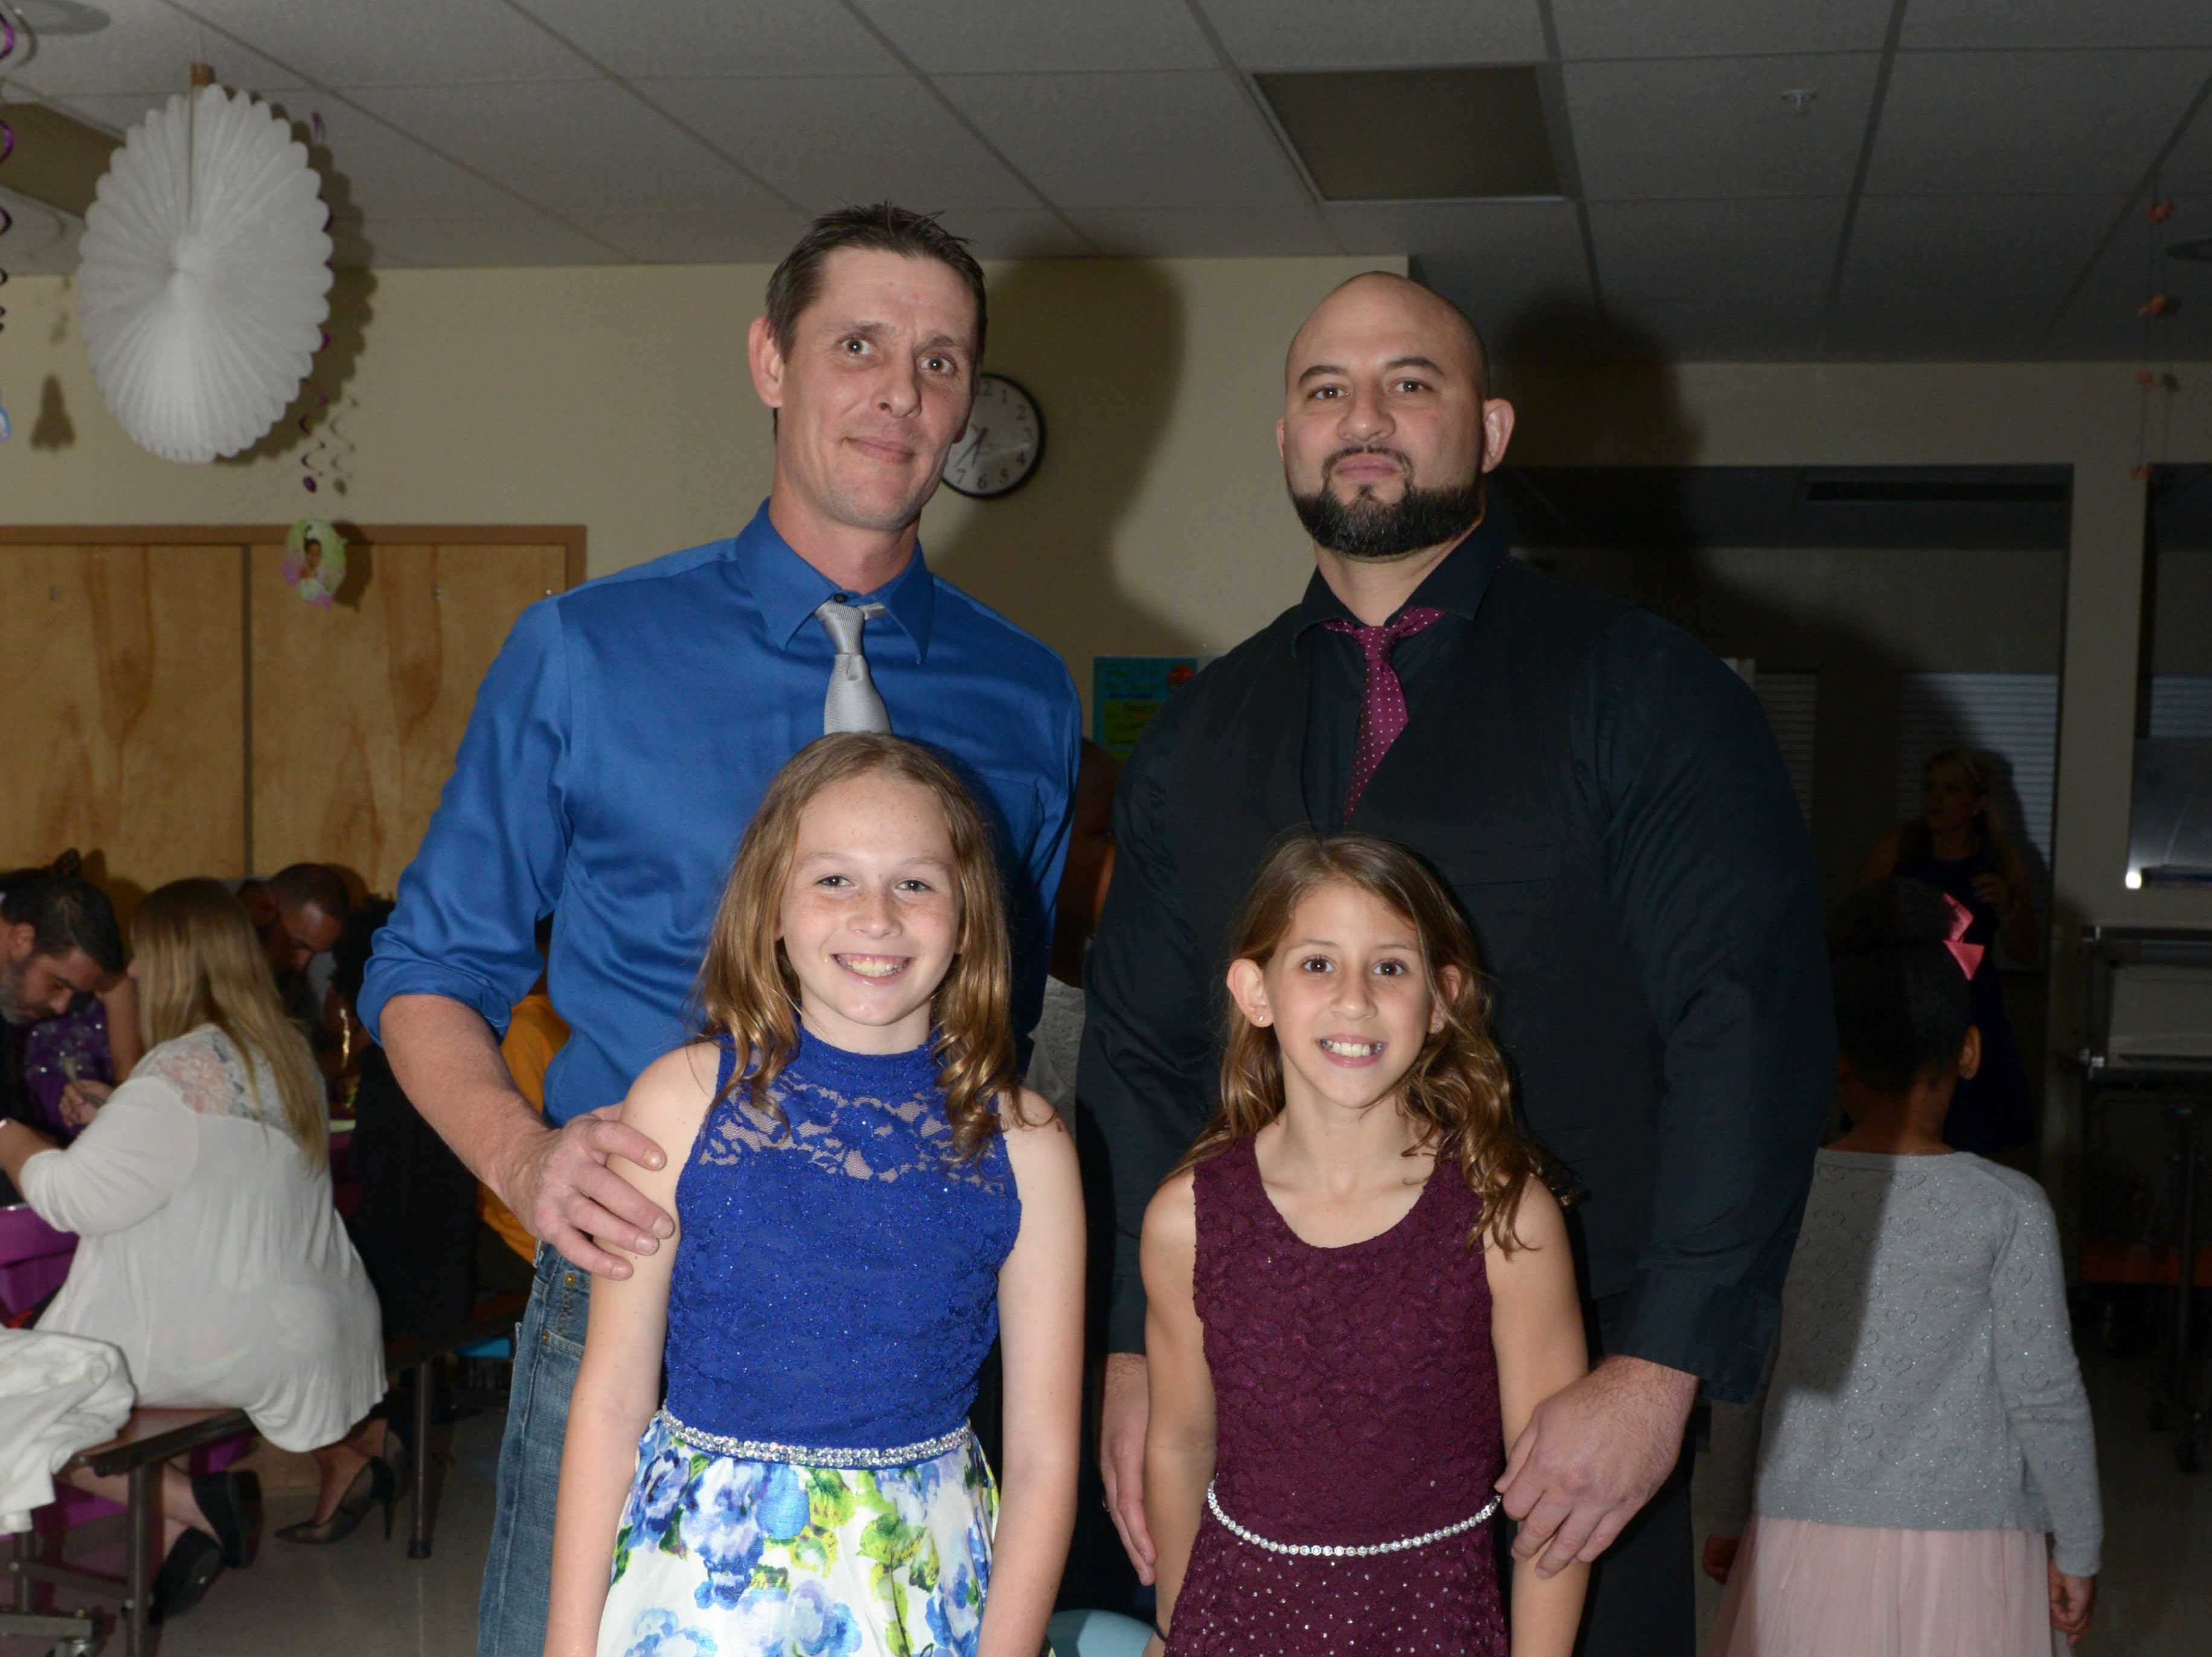 Joshua Lee and Julie Smith with Michael and Izabell Marjieh at the Father/Daughter/Someone Special Dance at Renaissance Charter School of St. Lucie.